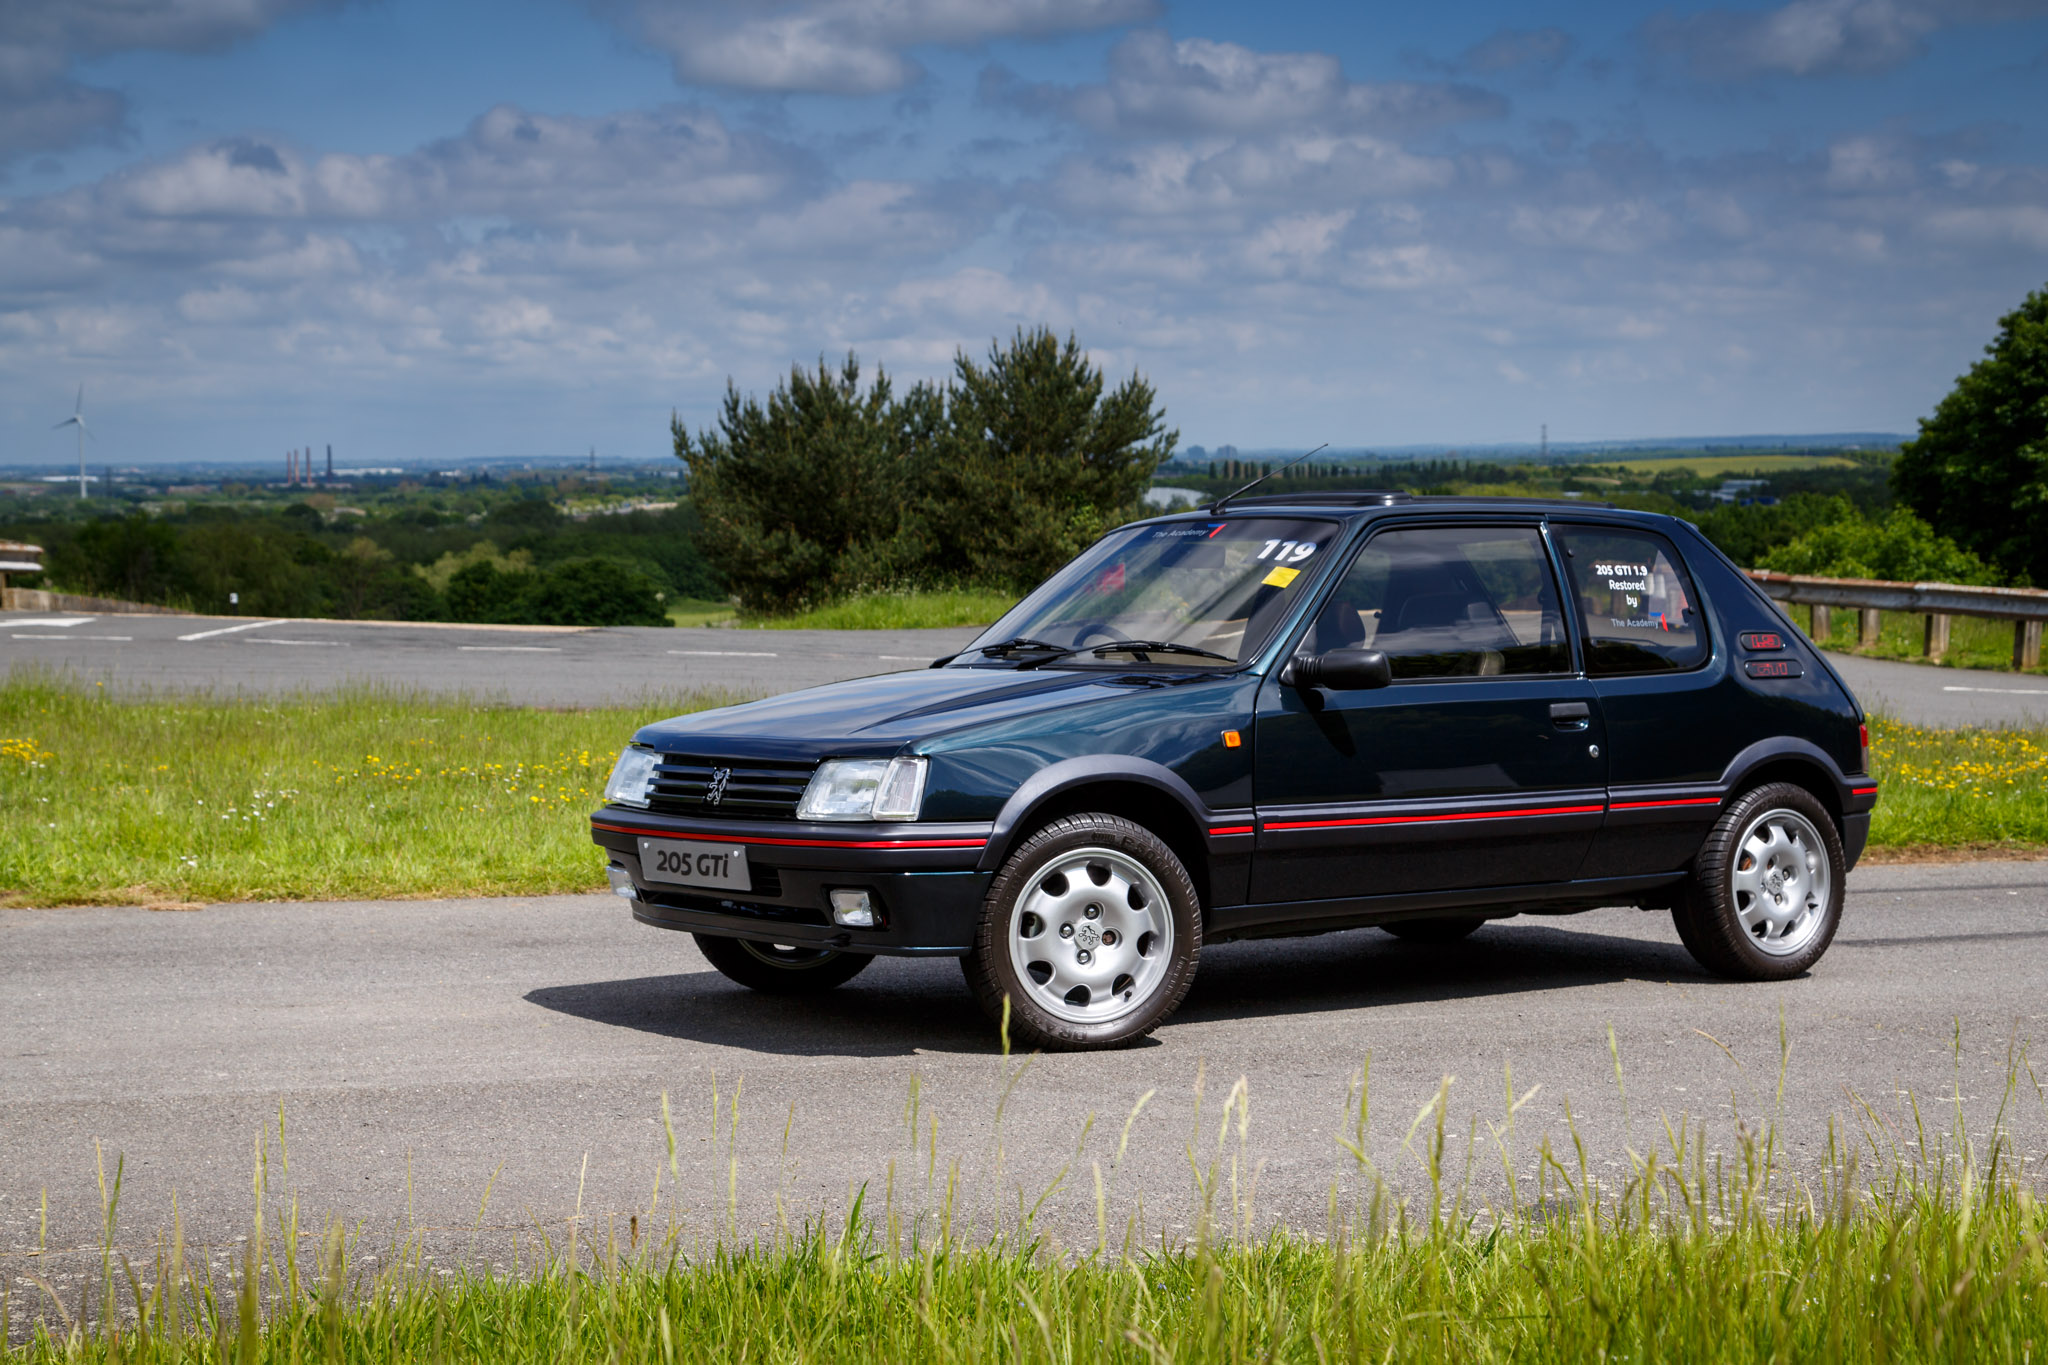 peugeot 205 gti 1 9 2. Black Bedroom Furniture Sets. Home Design Ideas